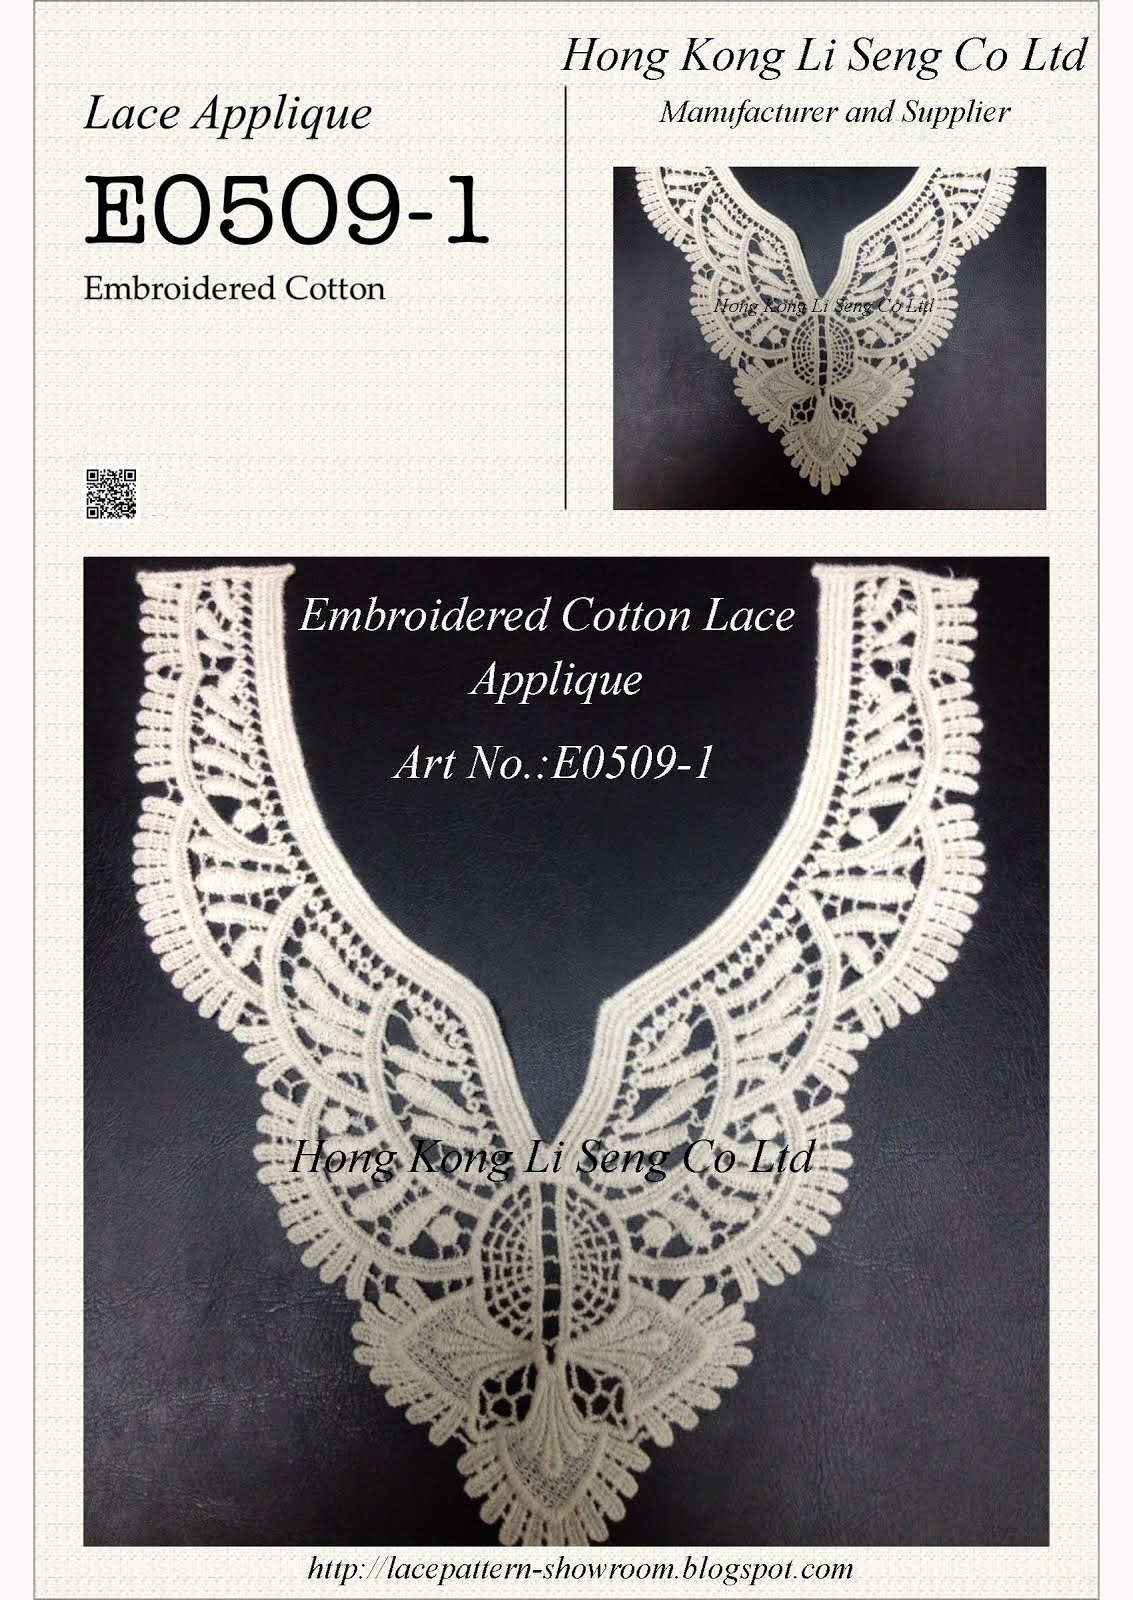 Embroidered Cotton Lace Applique Manufacturer and Supplier - Hong Kong Li Seng Co Ltd